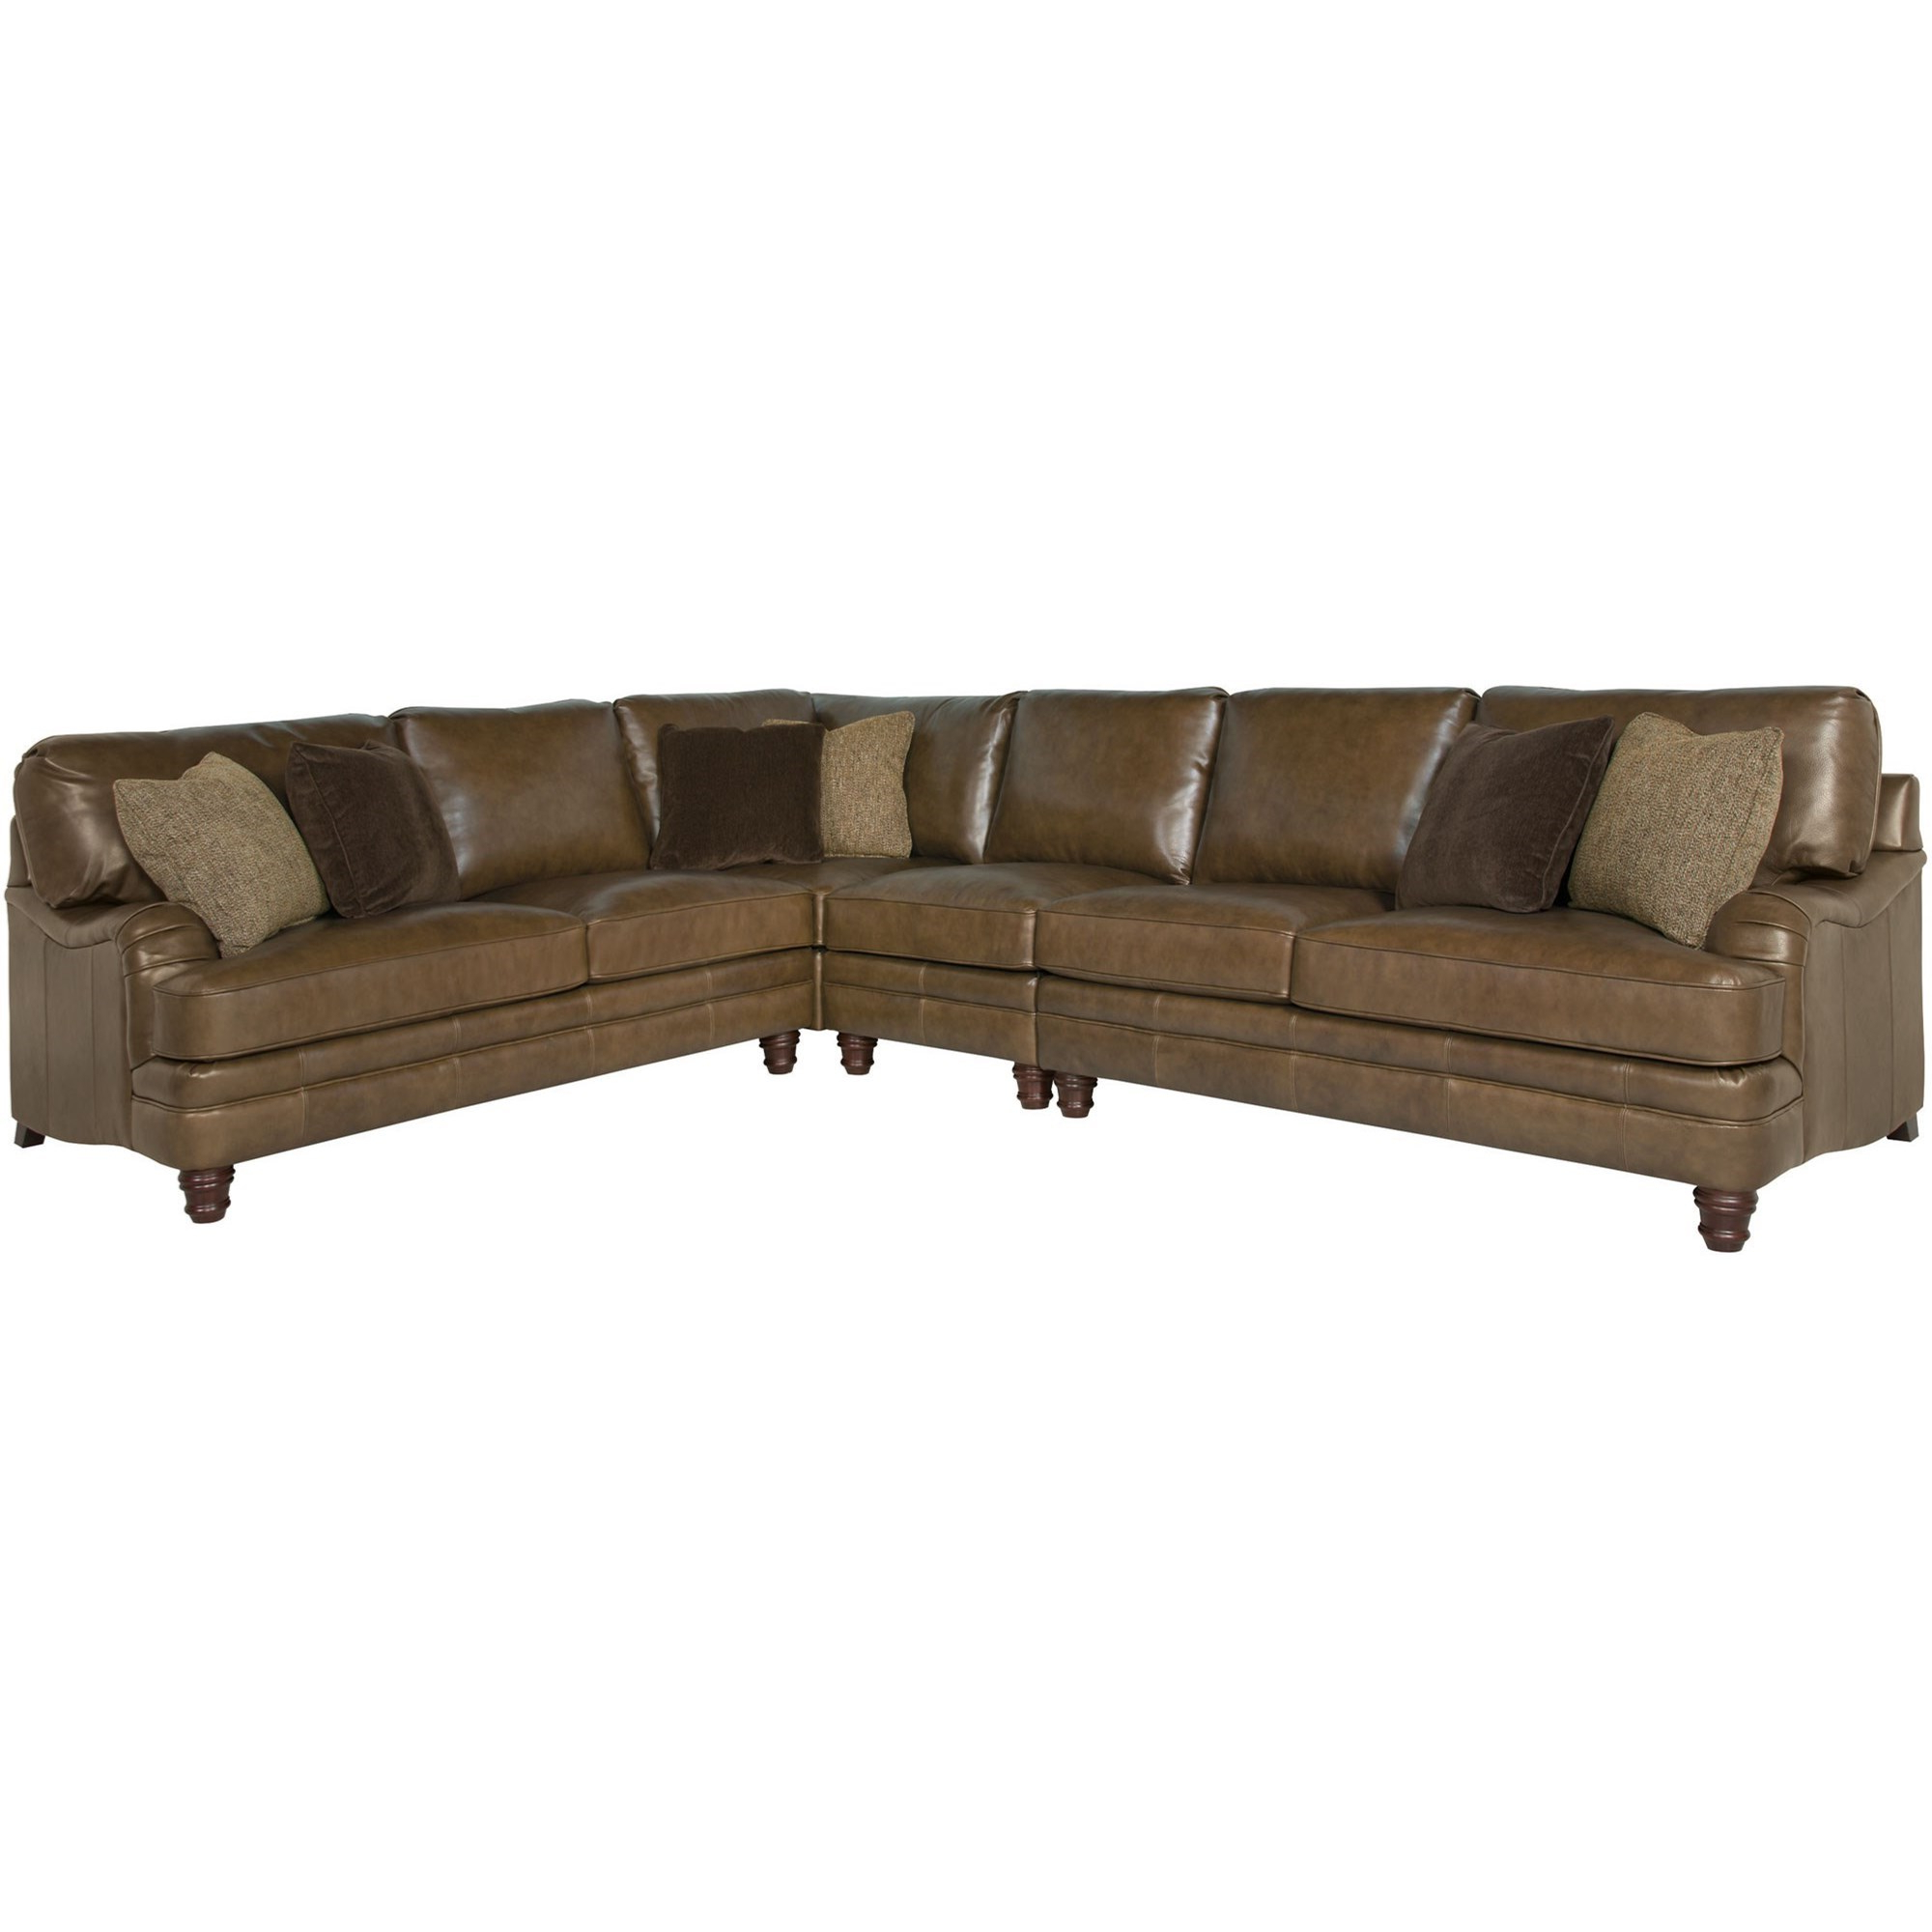 Well Liked Tarleton 5 Piece Dining Sets Inside Bernhardt Tarleton Traditional Styled Sectional Sofa (View 19 of 25)